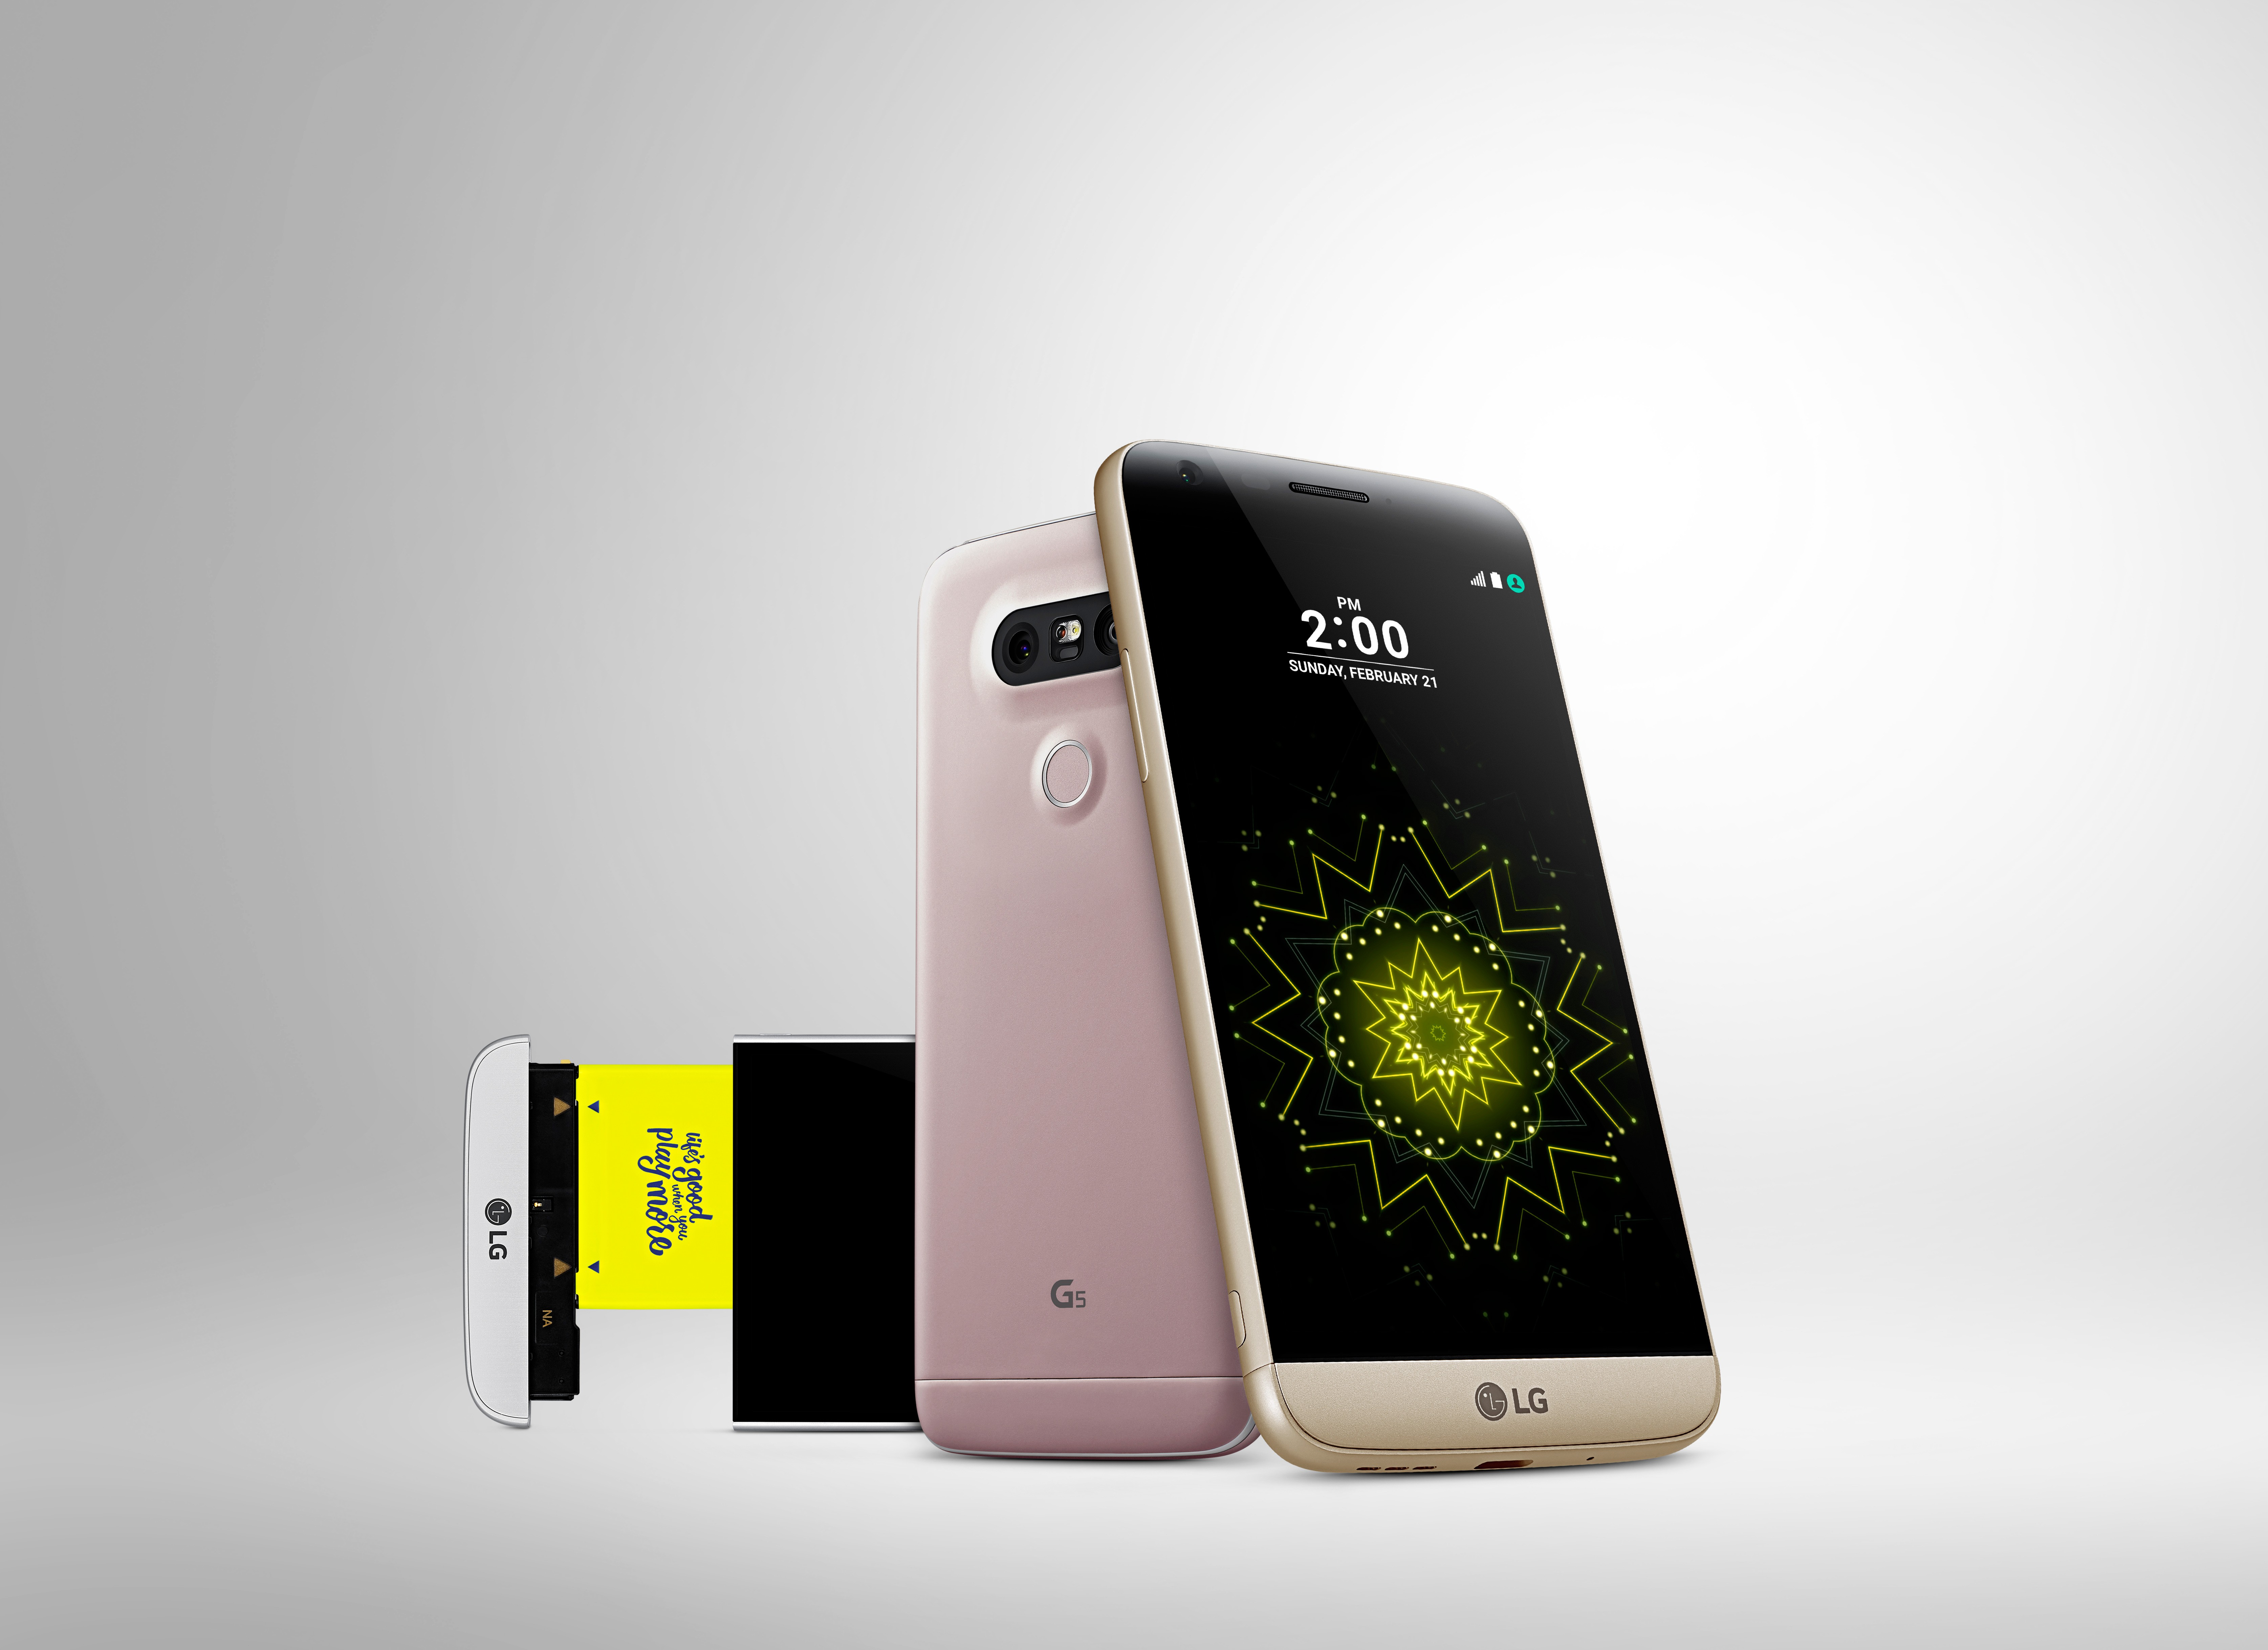 The LG G5 has a 'chin' for swapping out parts like batteries and cameras.